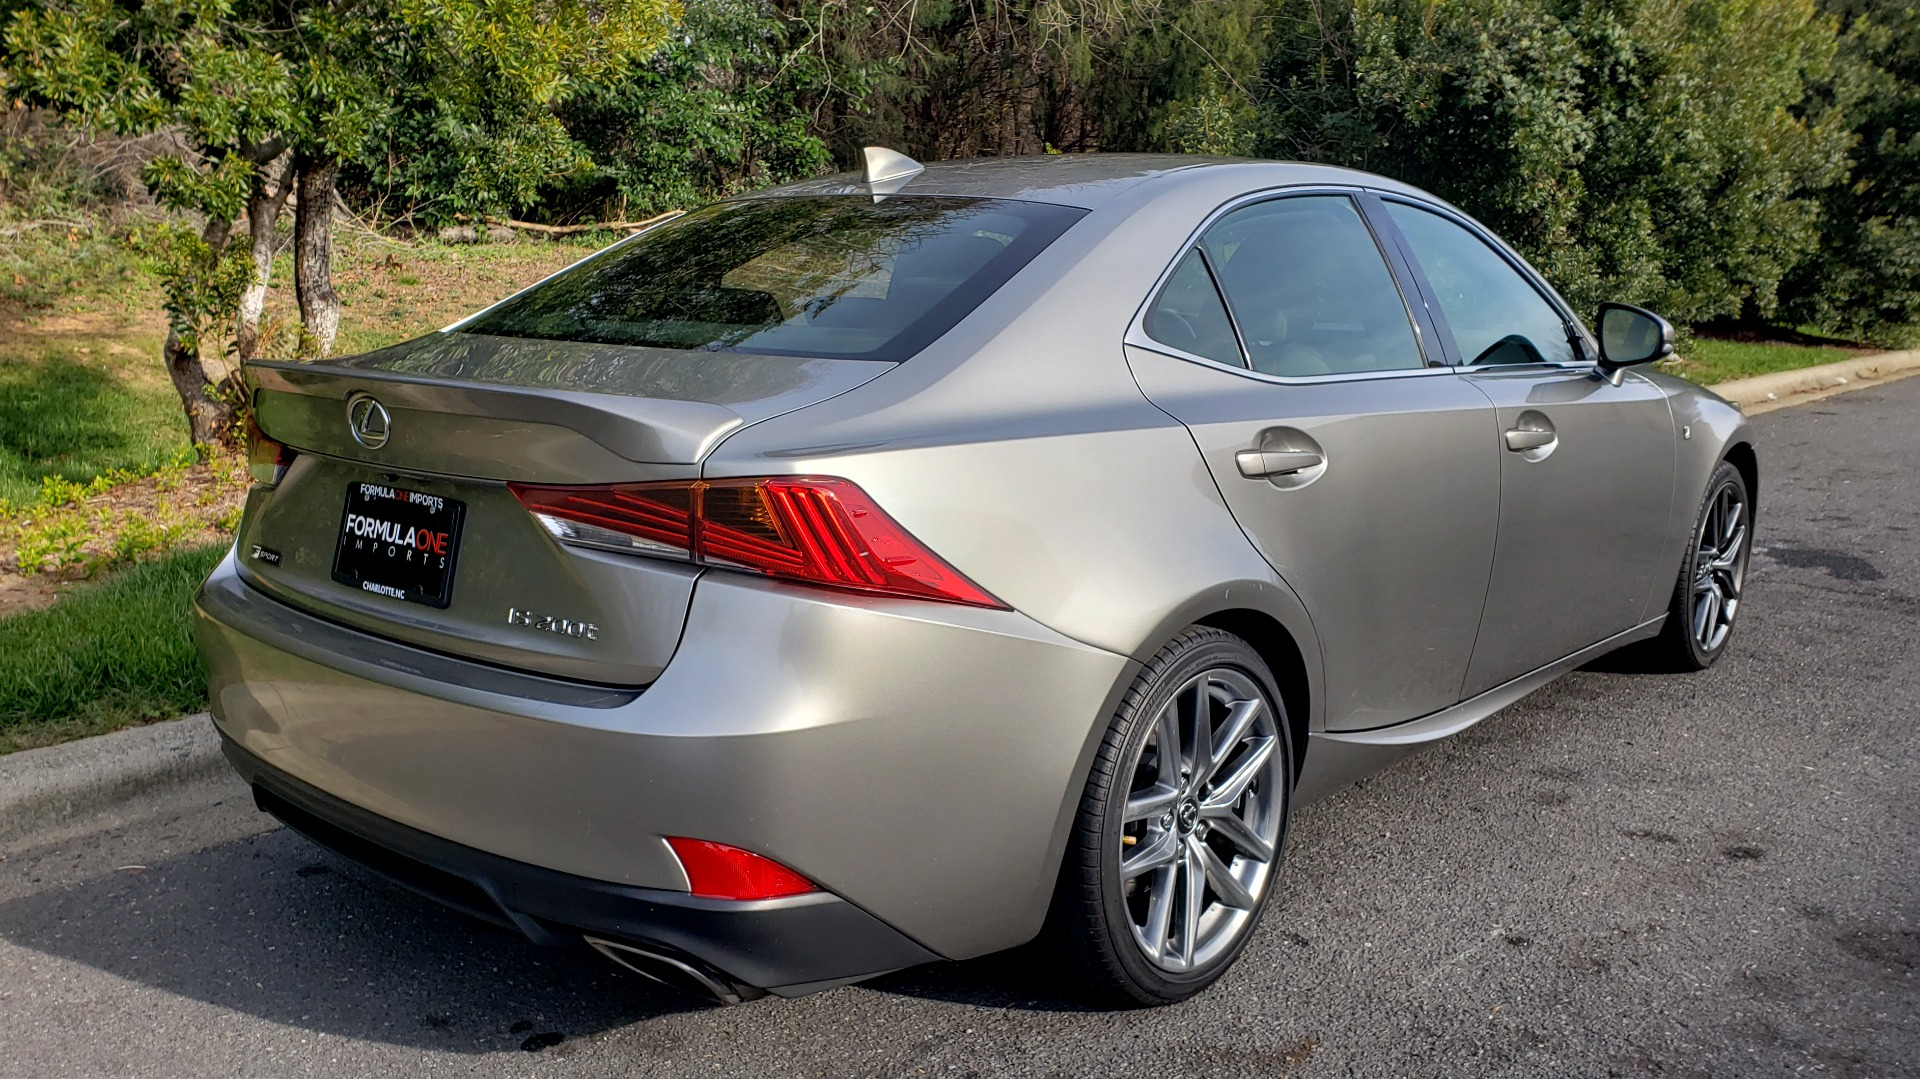 Used 2017 Lexus IS 200 TURBO F-SPORT / BSM / SUNROOF / VENT SEATS / REARVIEW for sale $24,945 at Formula Imports in Charlotte NC 28227 6